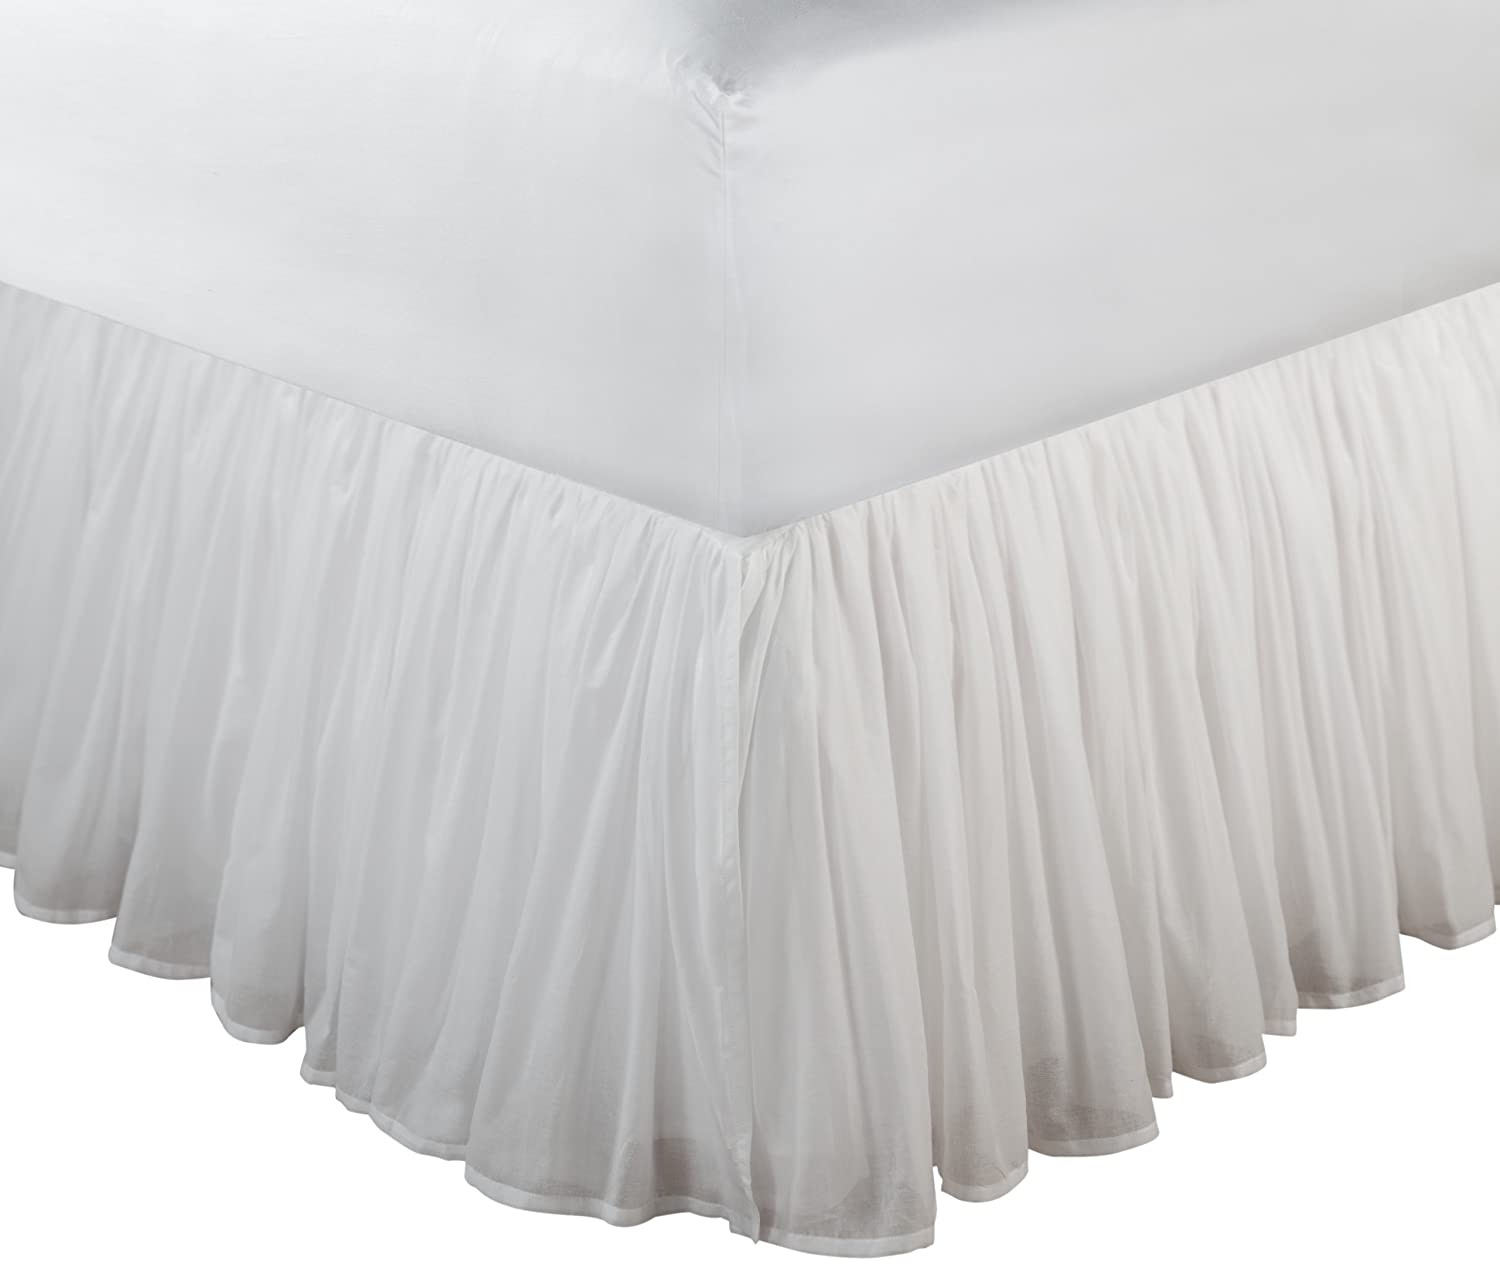 Amazon.com: Bed Skirts: Home & Kitchen